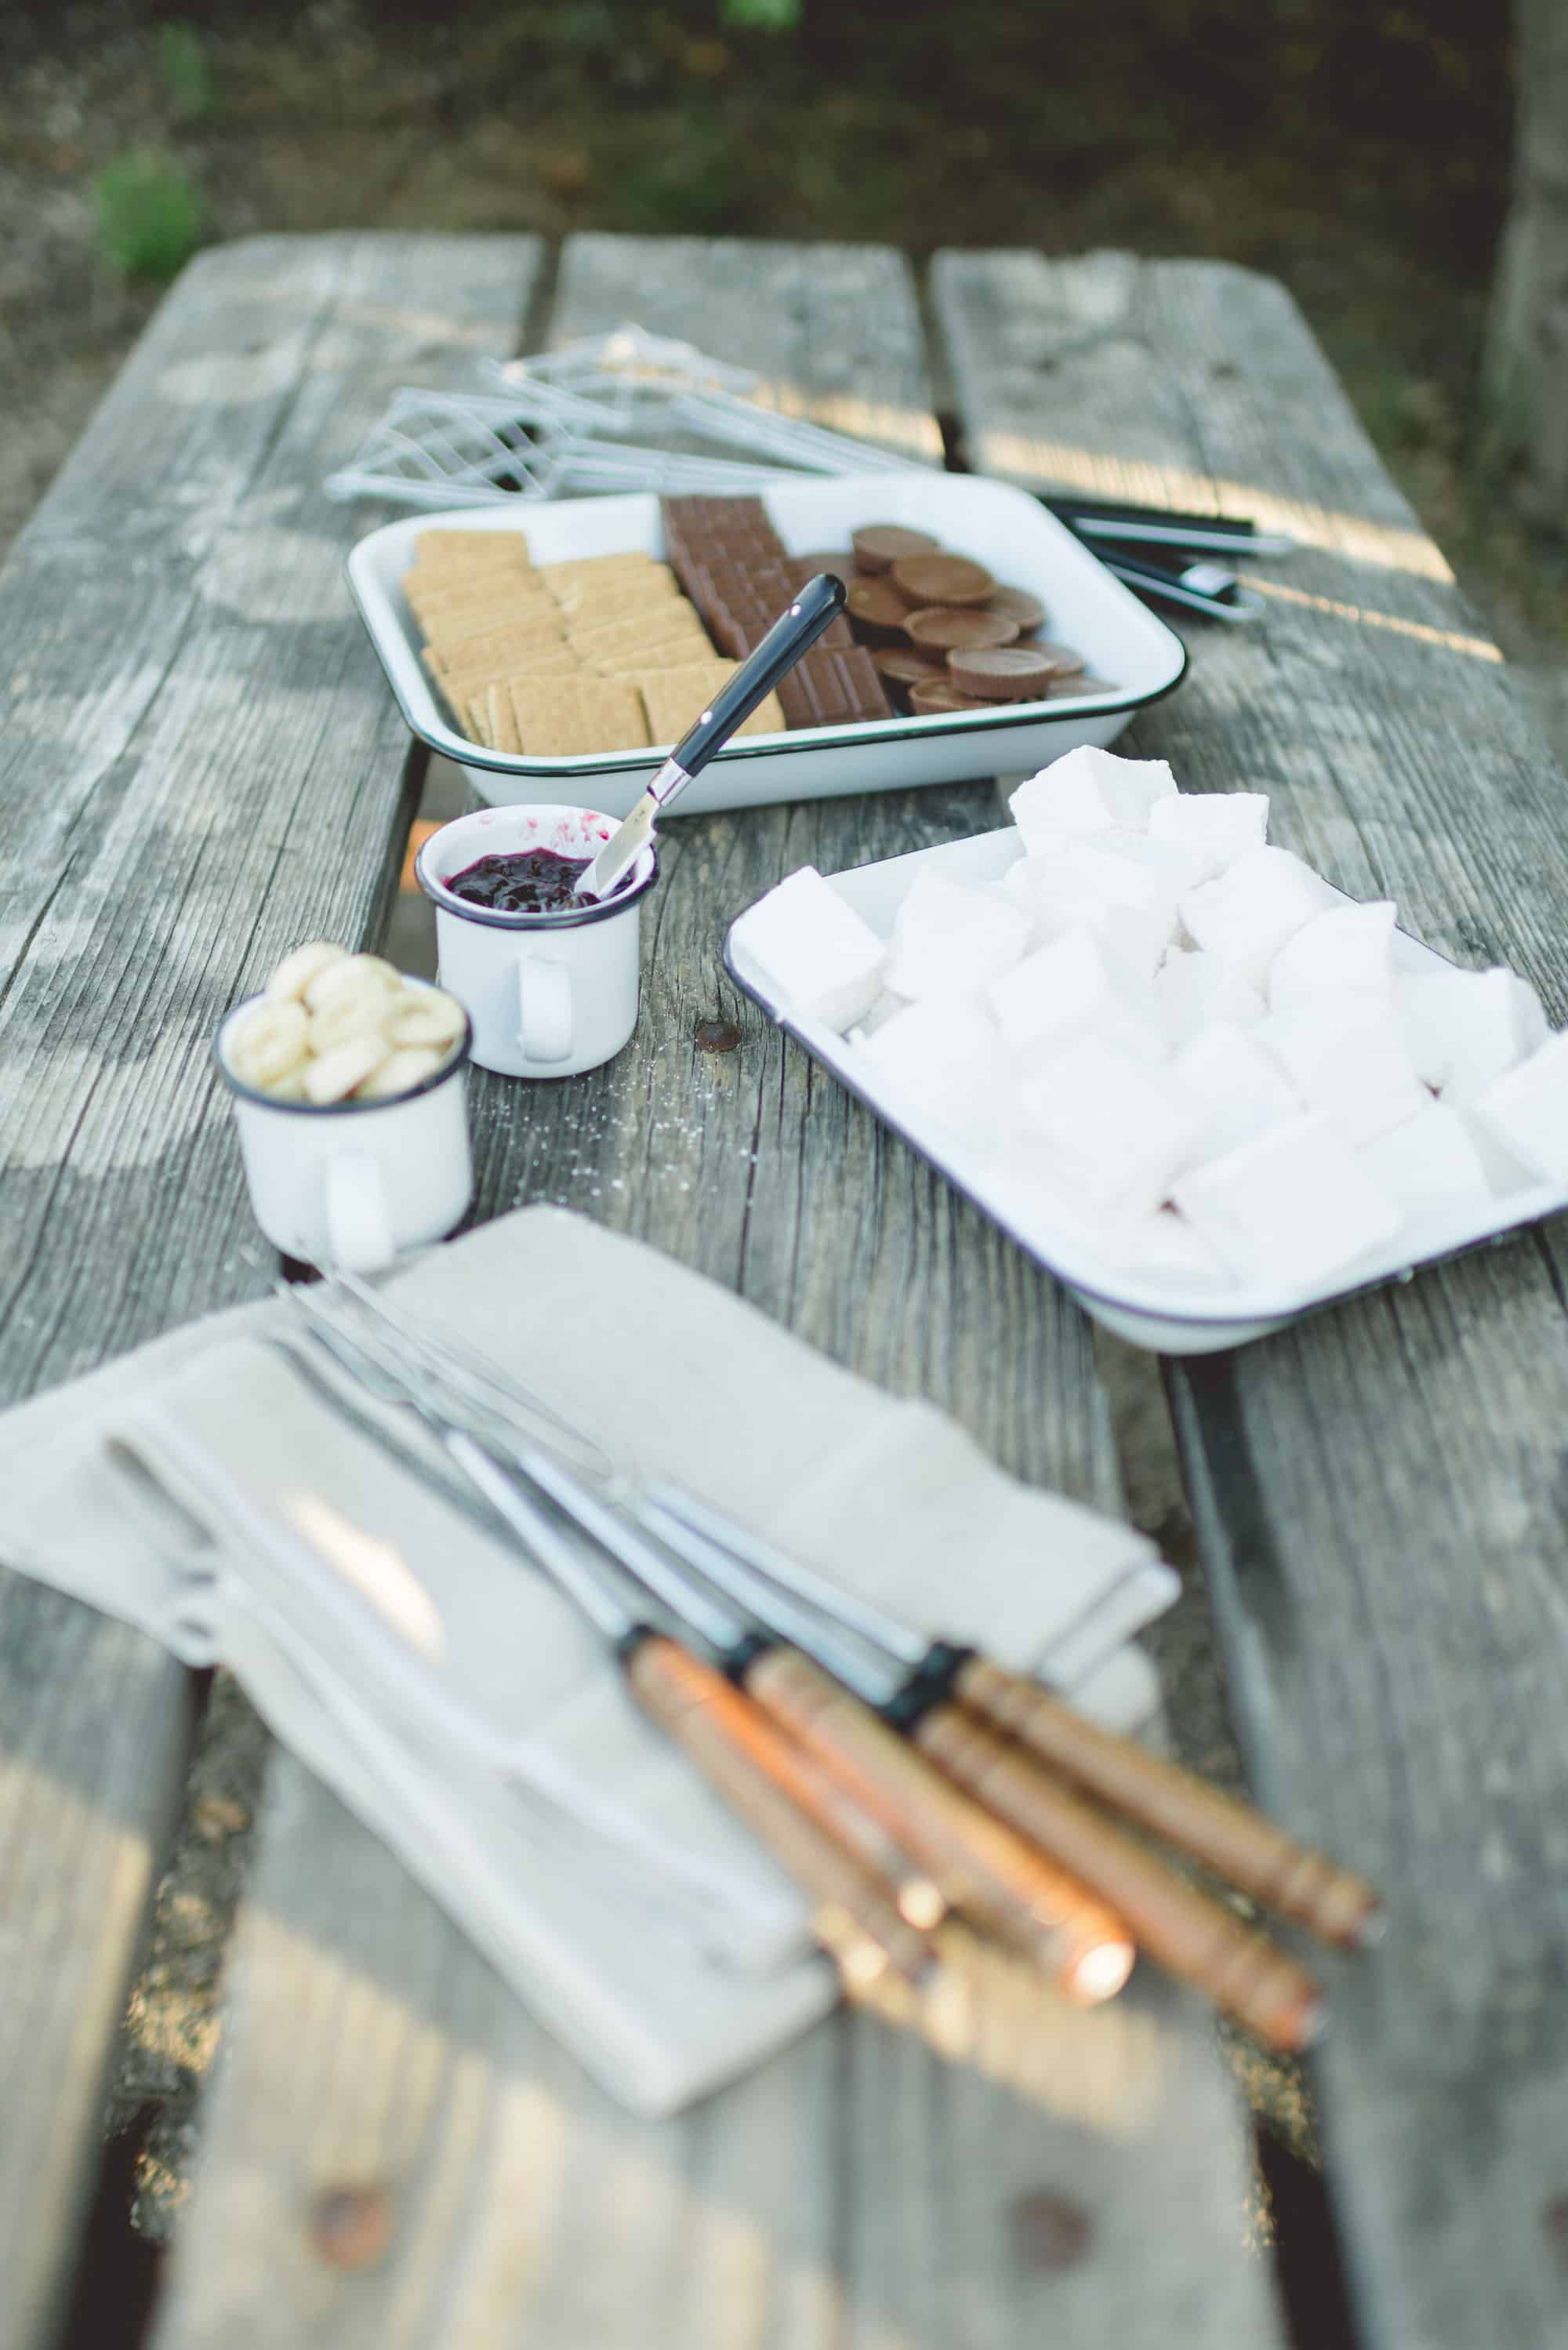 Some More S'mores by Tiffani Thiessen • Photography by Rebeca Sanabria